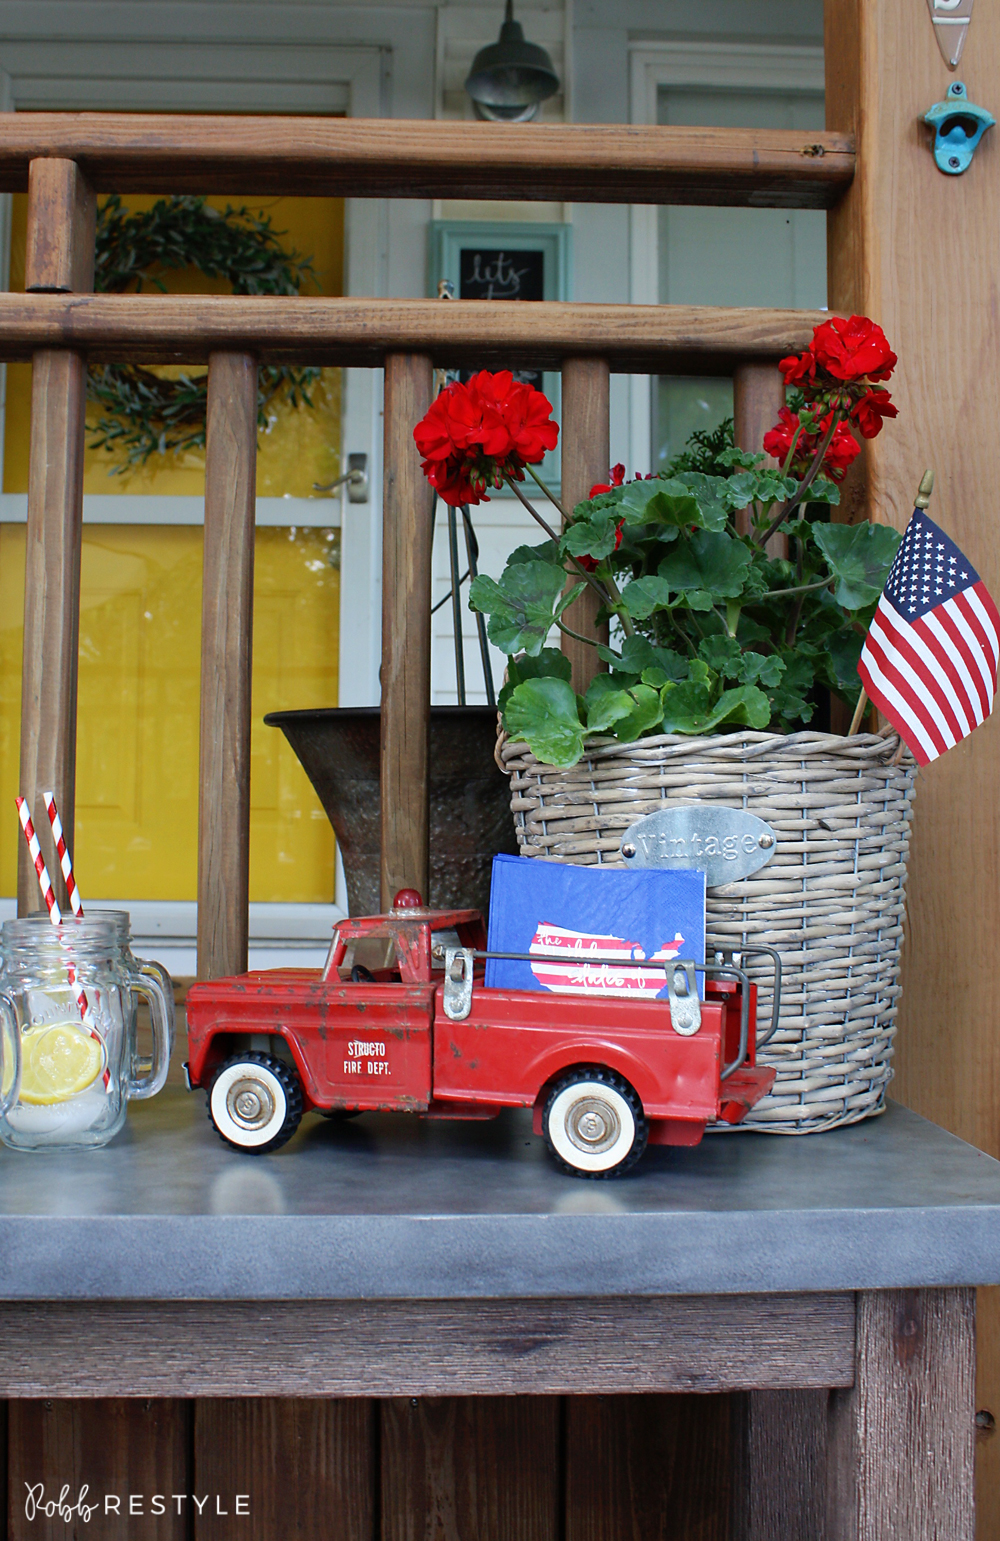 vintage america party decor robb restyle